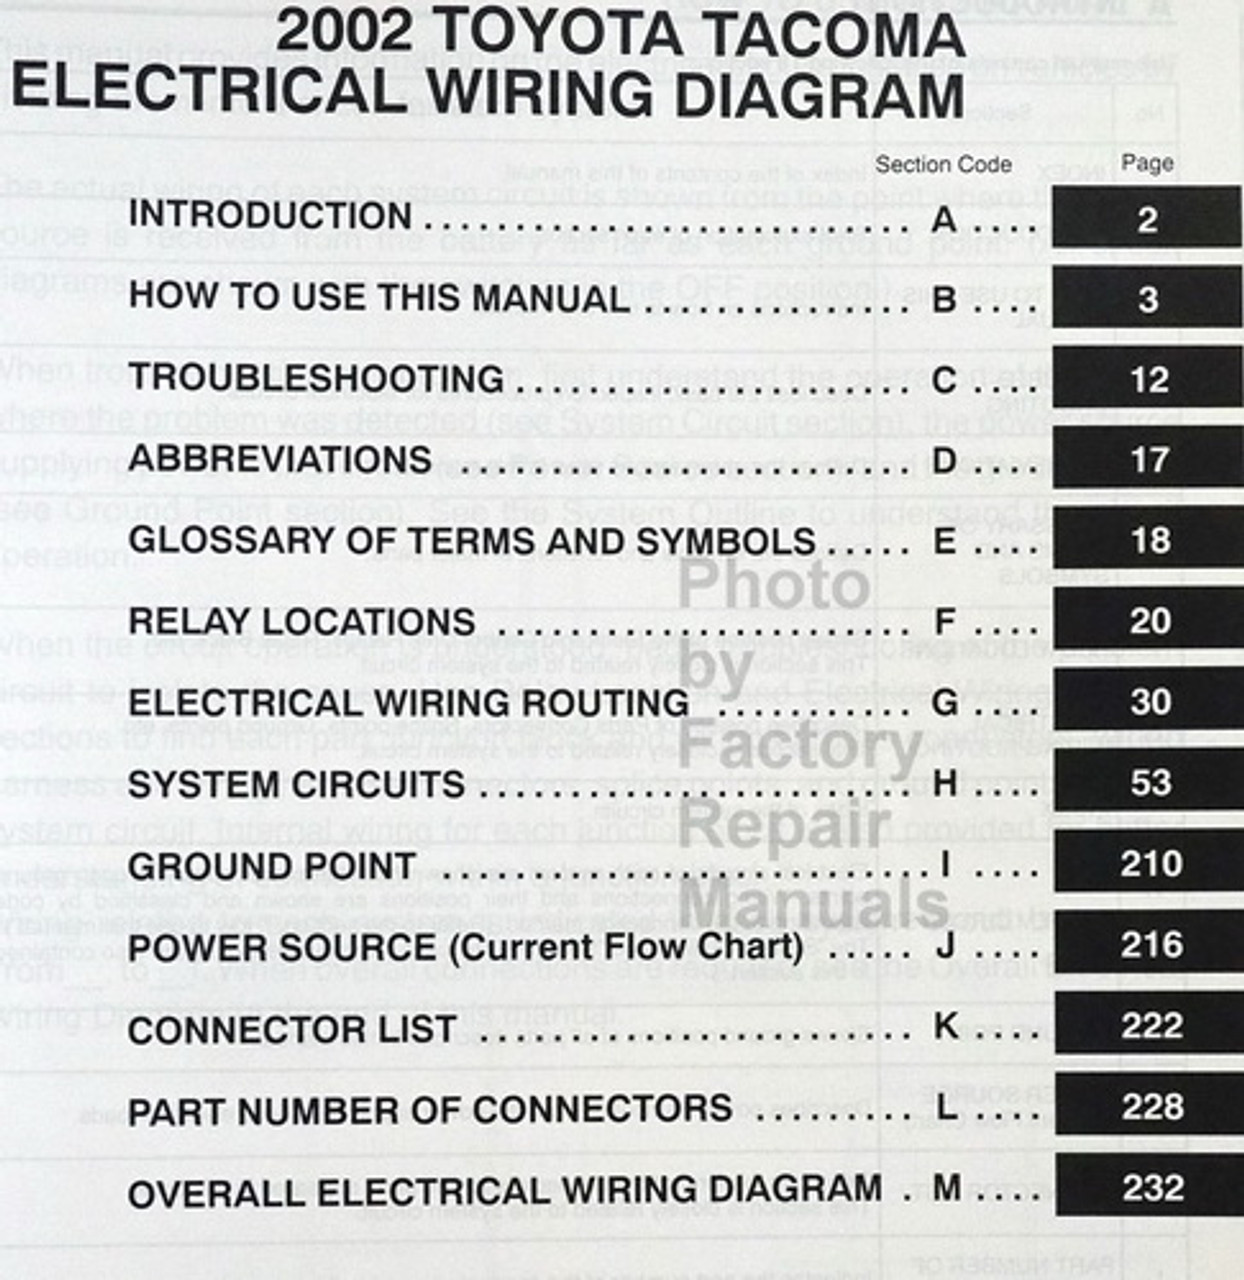 2002 tacoma wiring diagram 2002 toyota tacoma electrical wiring diagrams original manual  2002 toyota tacoma electrical wiring